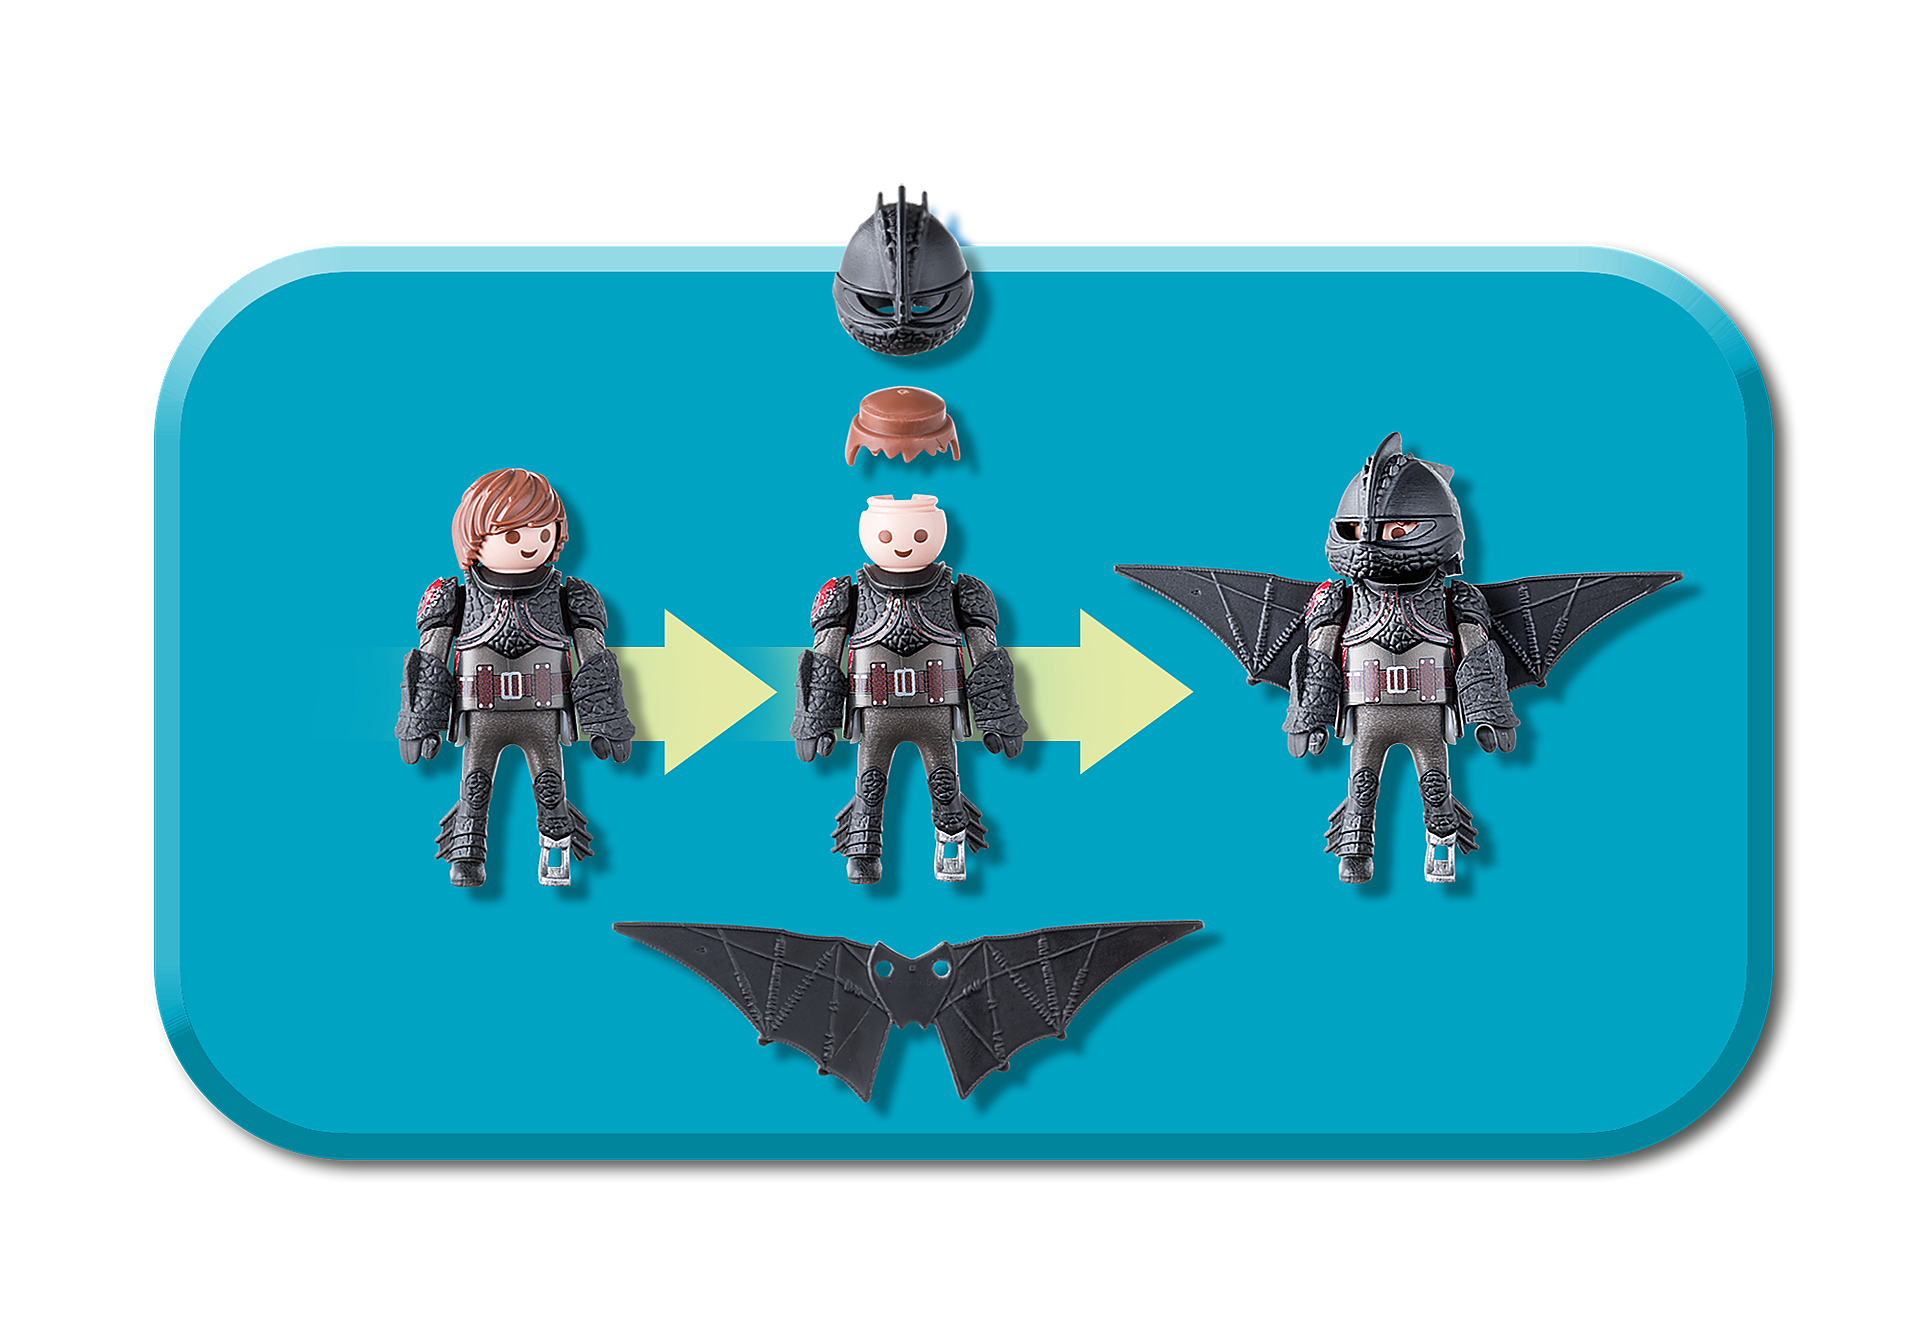 http://media.playmobil.com/i/playmobil/70037_product_extra3/Hiccup and Toothless Playset